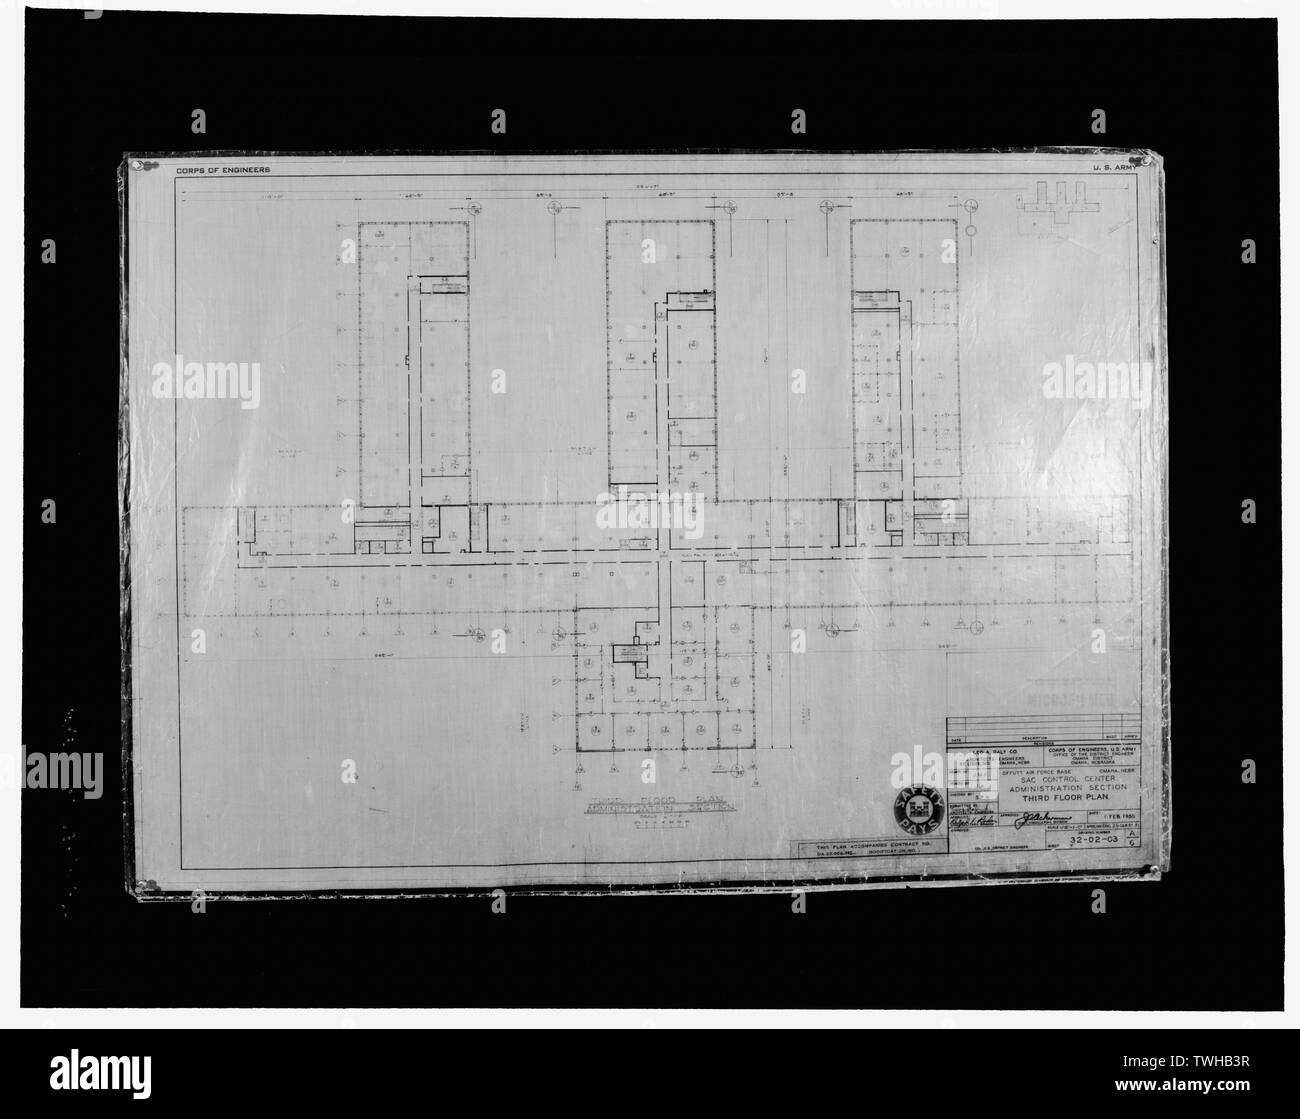 Sac Control Center Administration Section Third Floor Plan Drawing Number 32 02 03 Dated 1 February